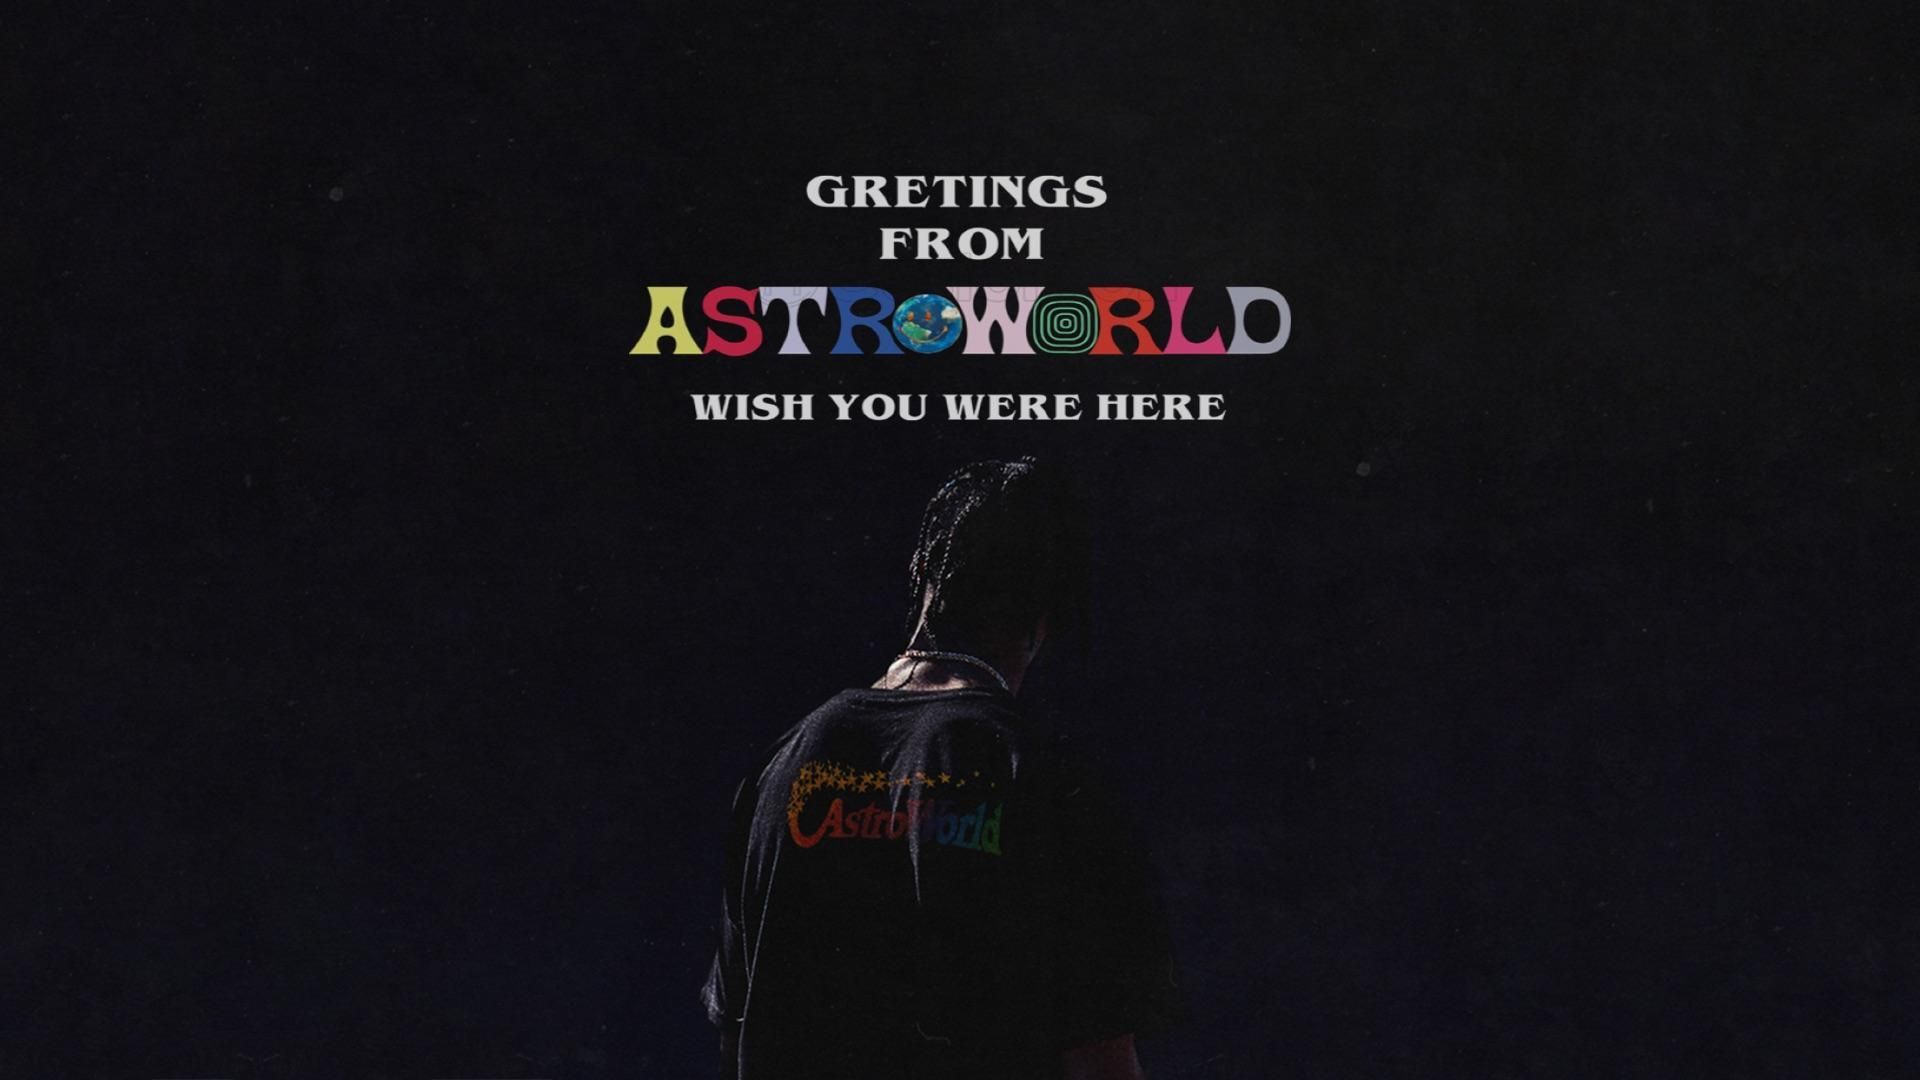 Travis Scott Astroworld 1920 X 1080 Travis Scott Quotes Travis Scott Wallpapers Travis Scott Astroworld